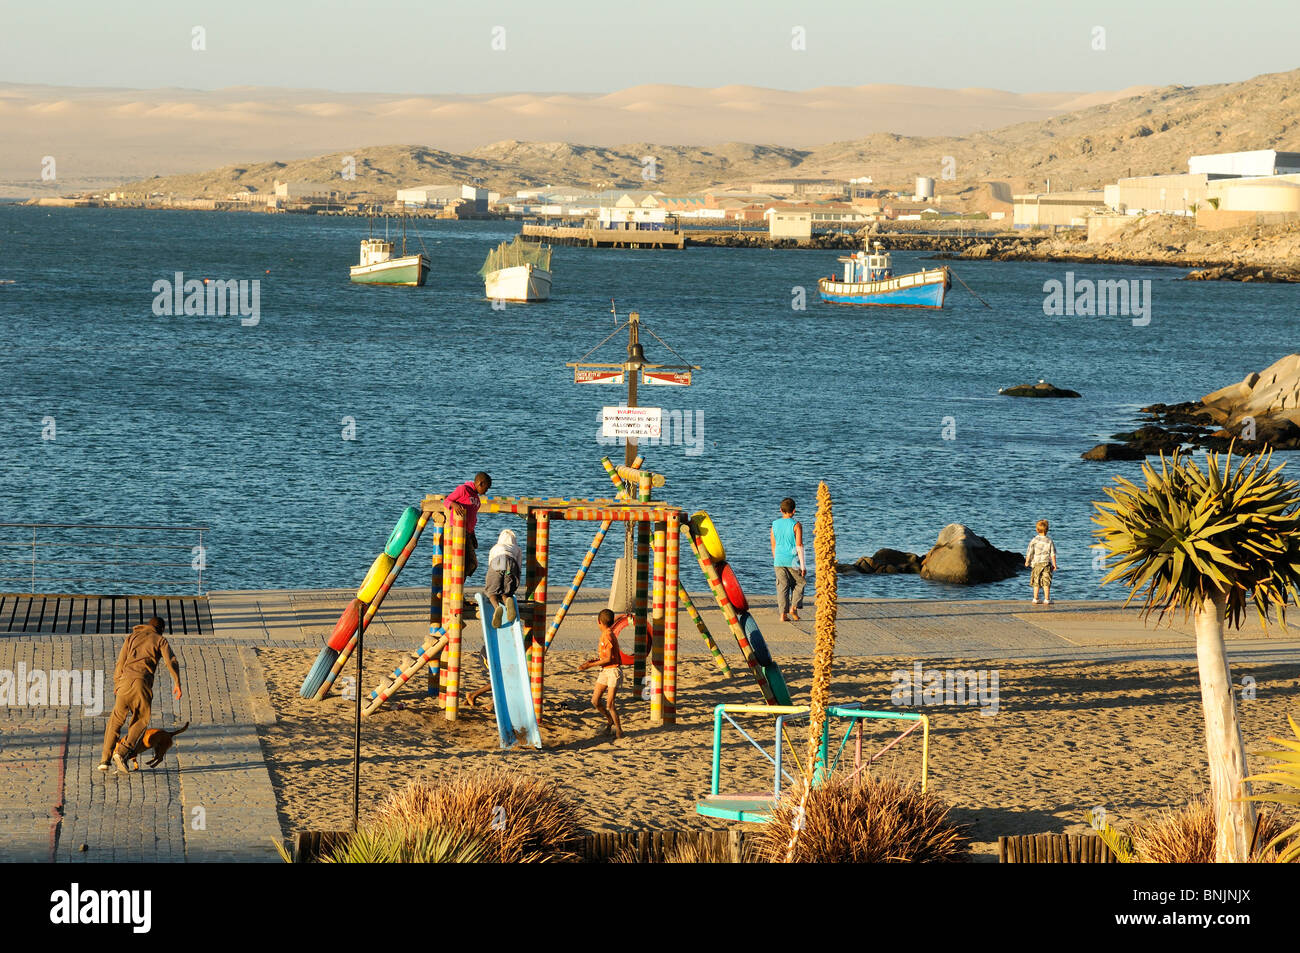 Harbour Luderitz Karas Region Namibia Africa Travel town kids - Stock Image